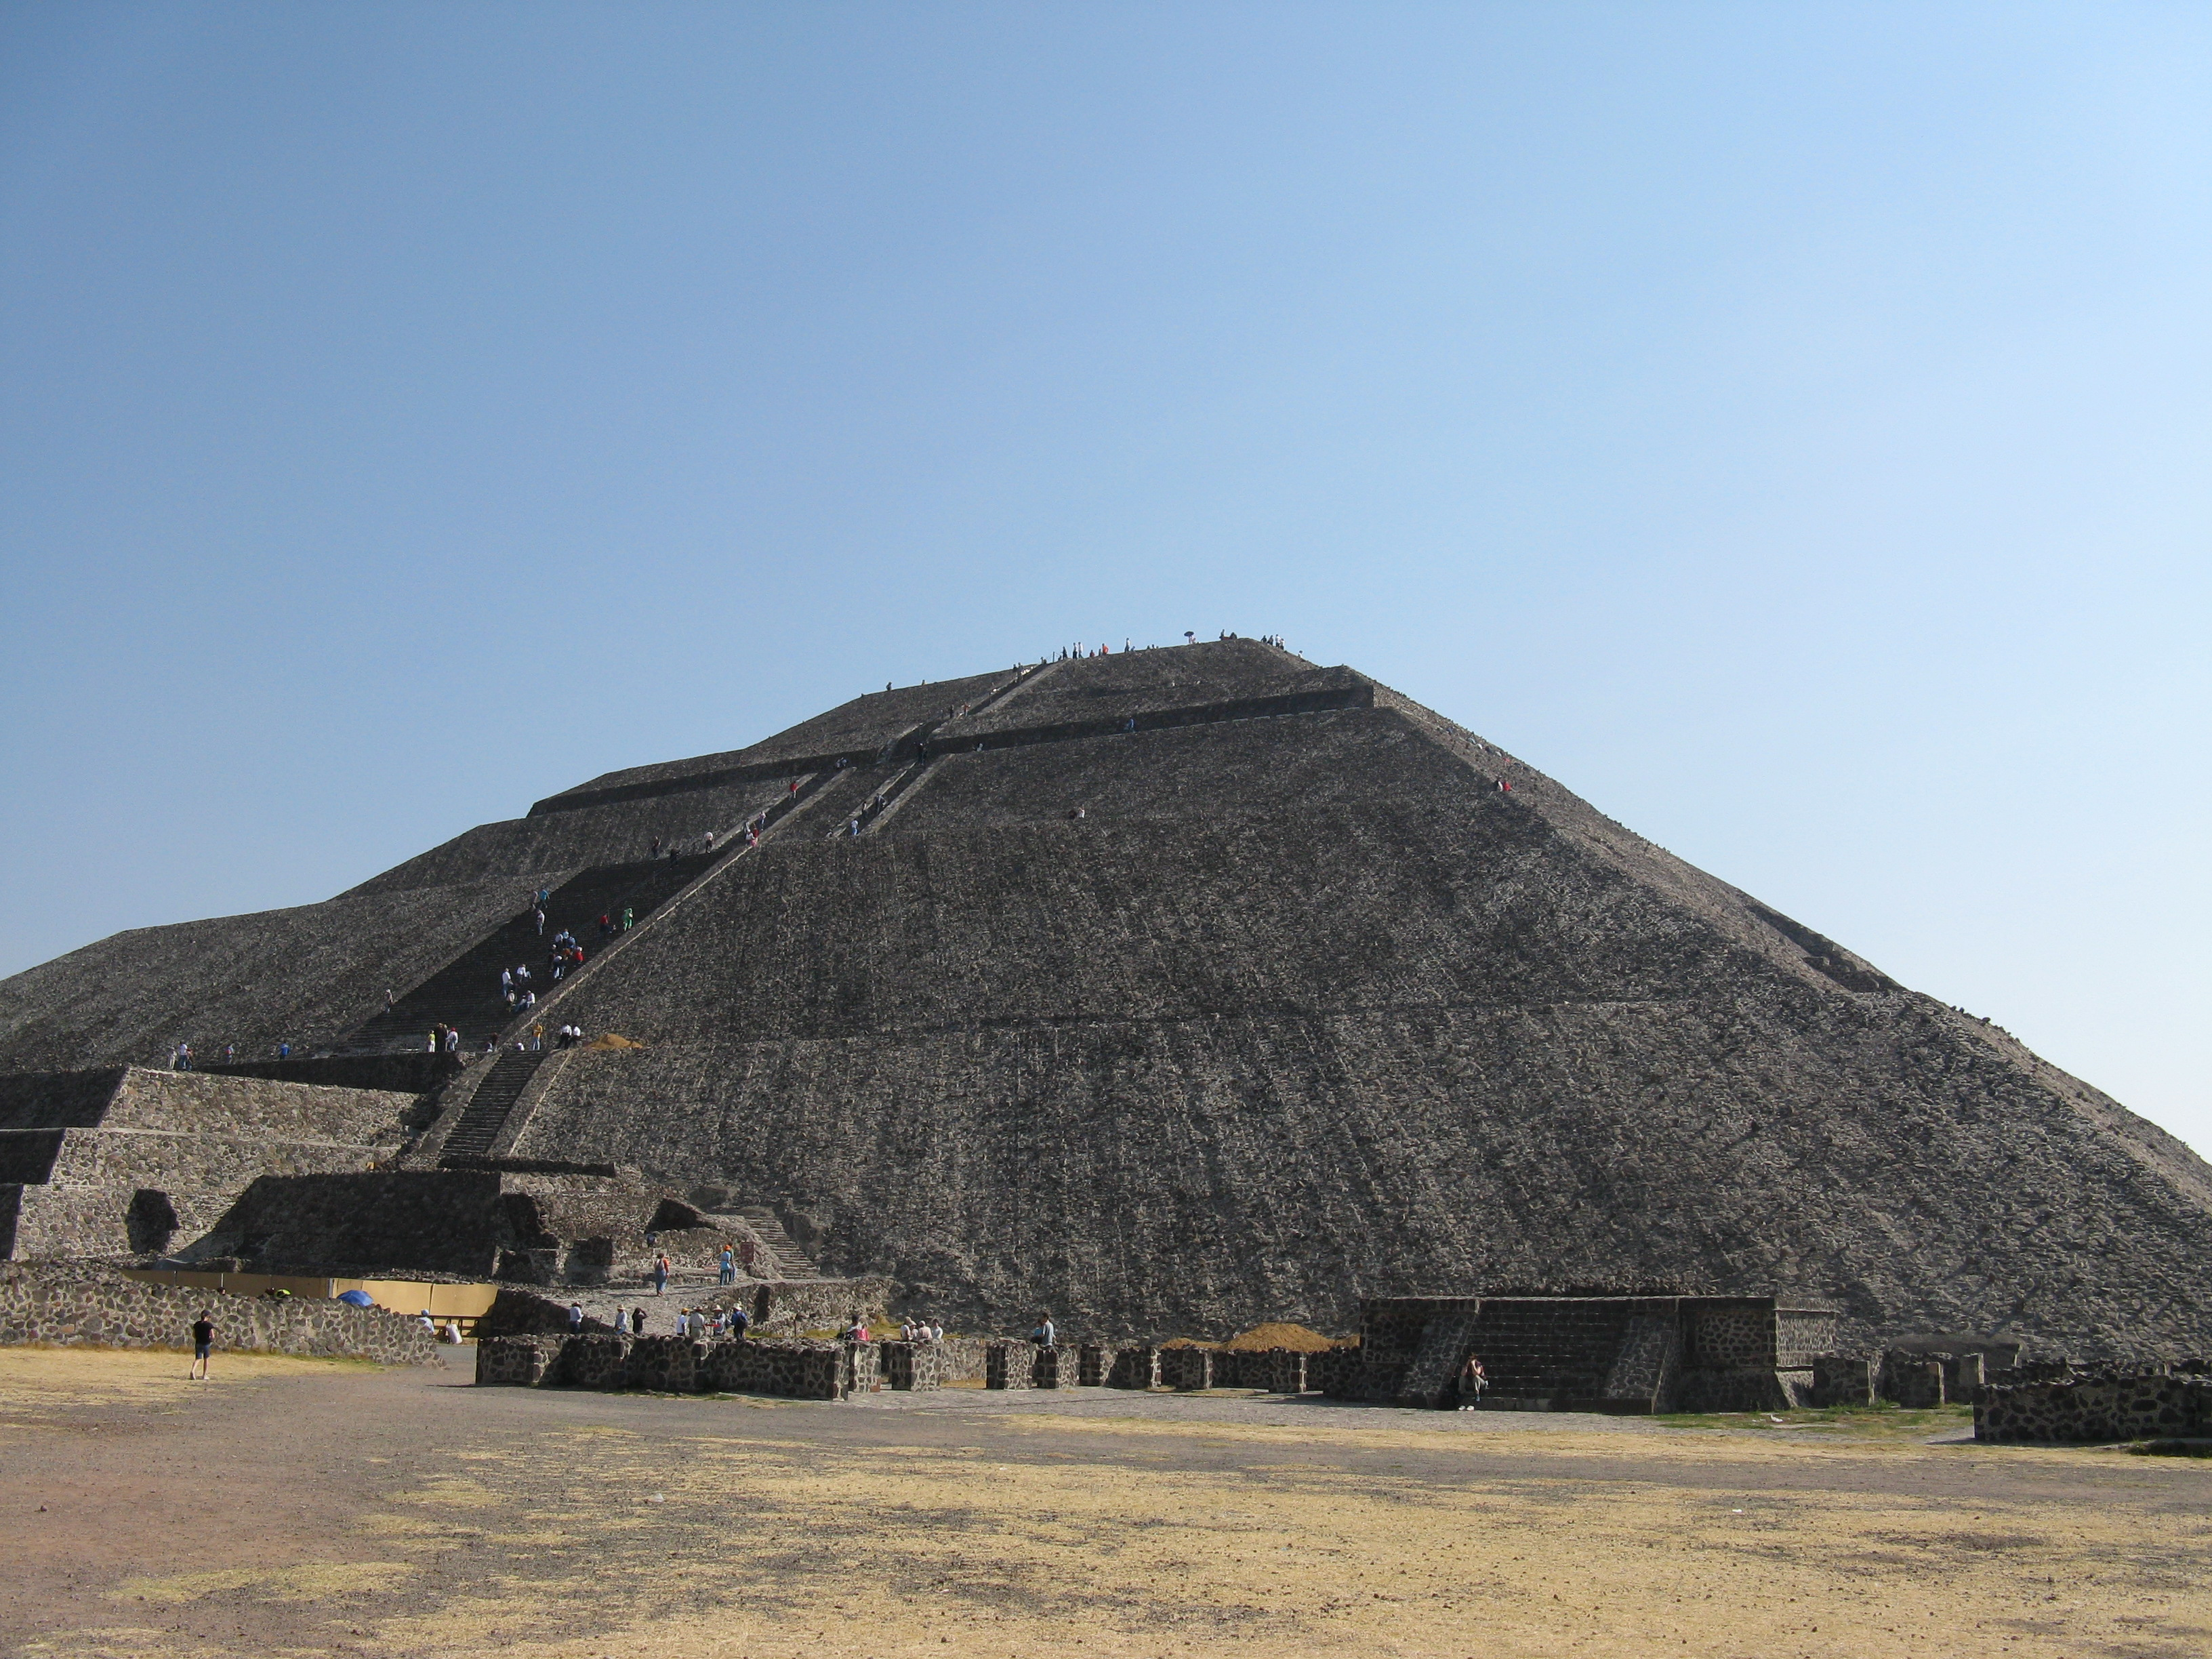 Temple of the Sun Pyramid